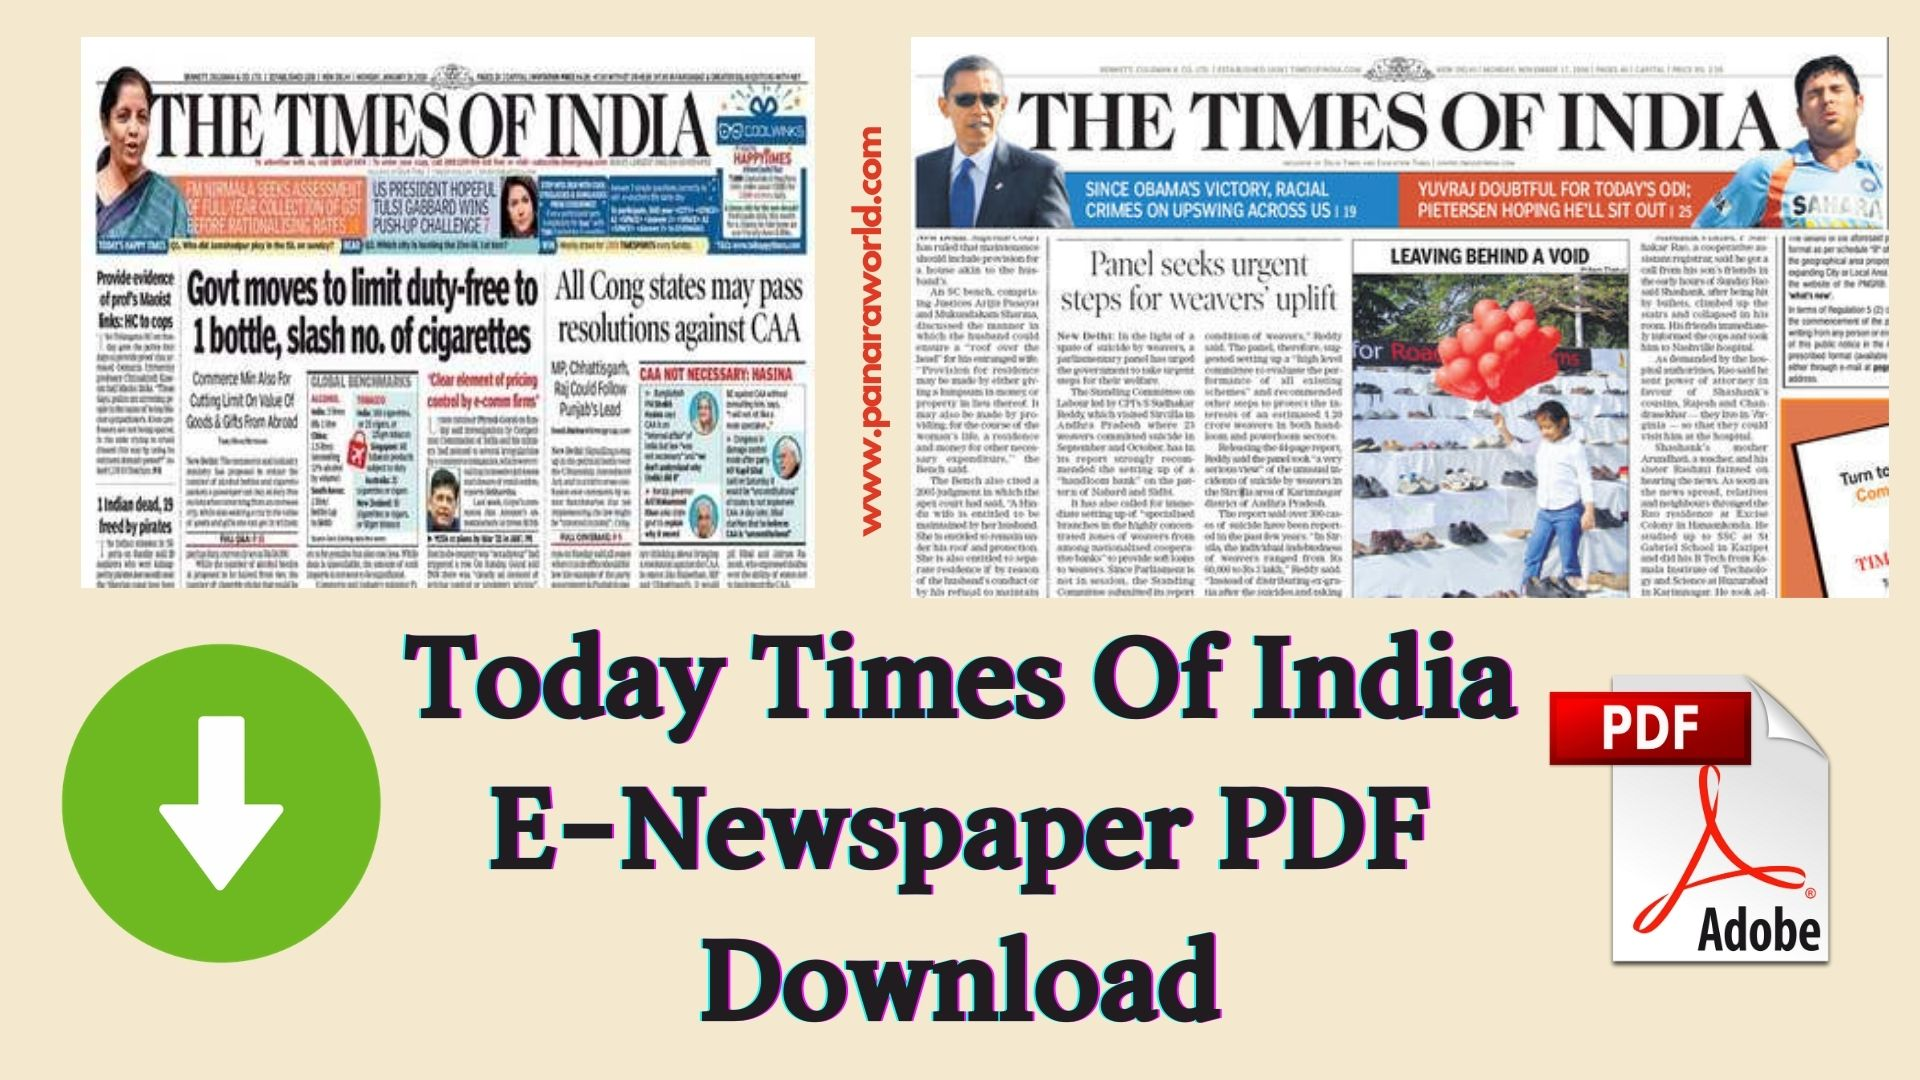 Today Times Of India E-Newspaper PDF Download ( PDF )